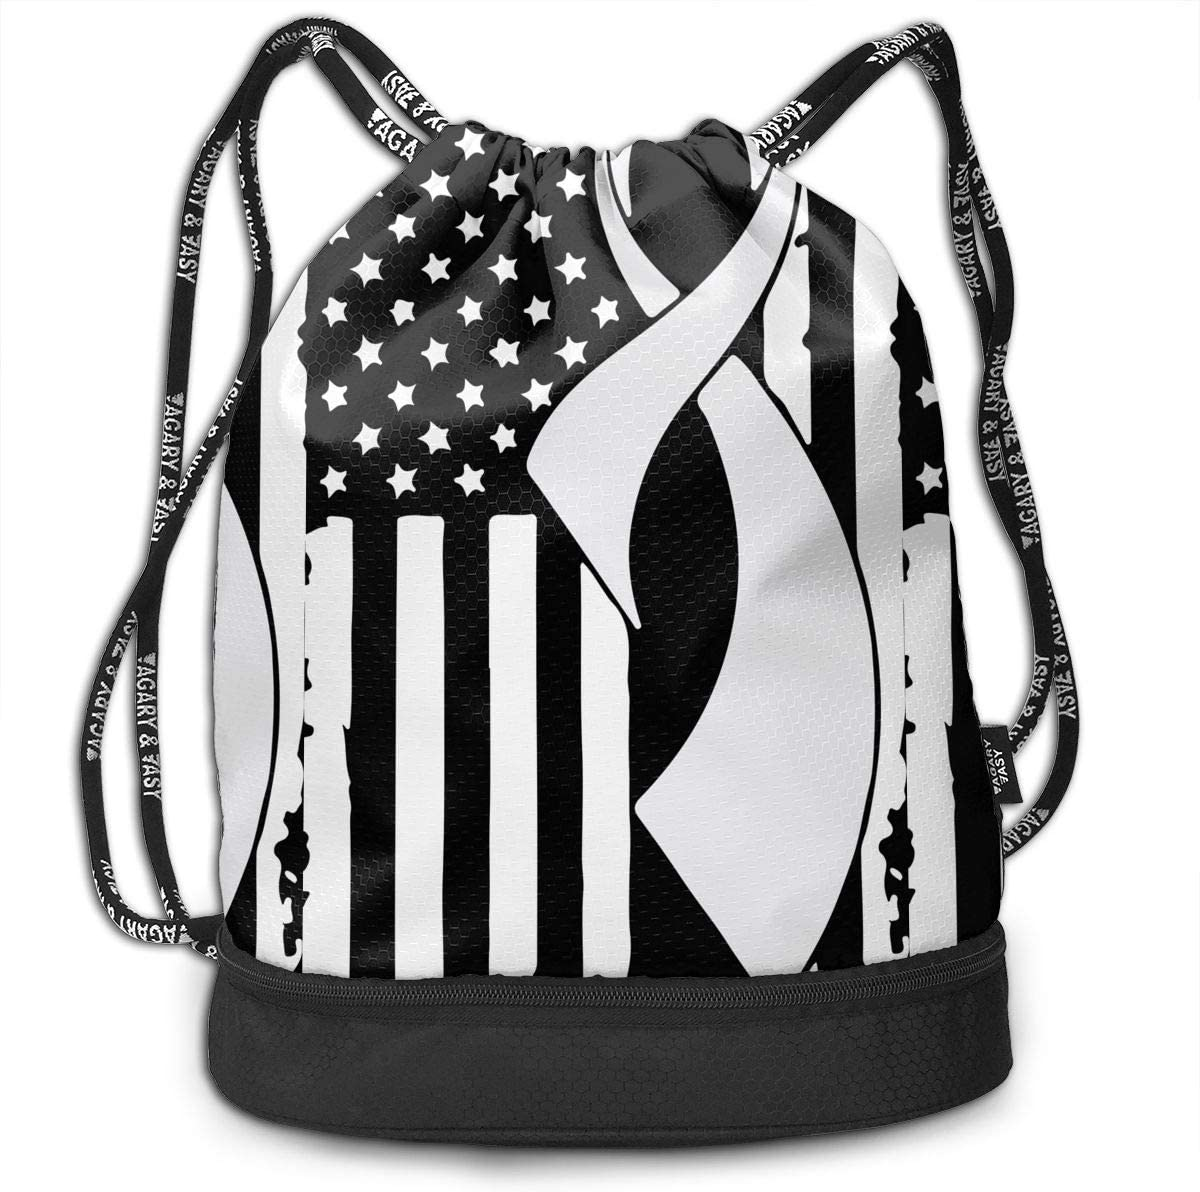 Lung Cancer Awareness Flag-1 Drawstring Bag Multifunctional String Backpack Custom Cinch Backpack Sport Gym Sack